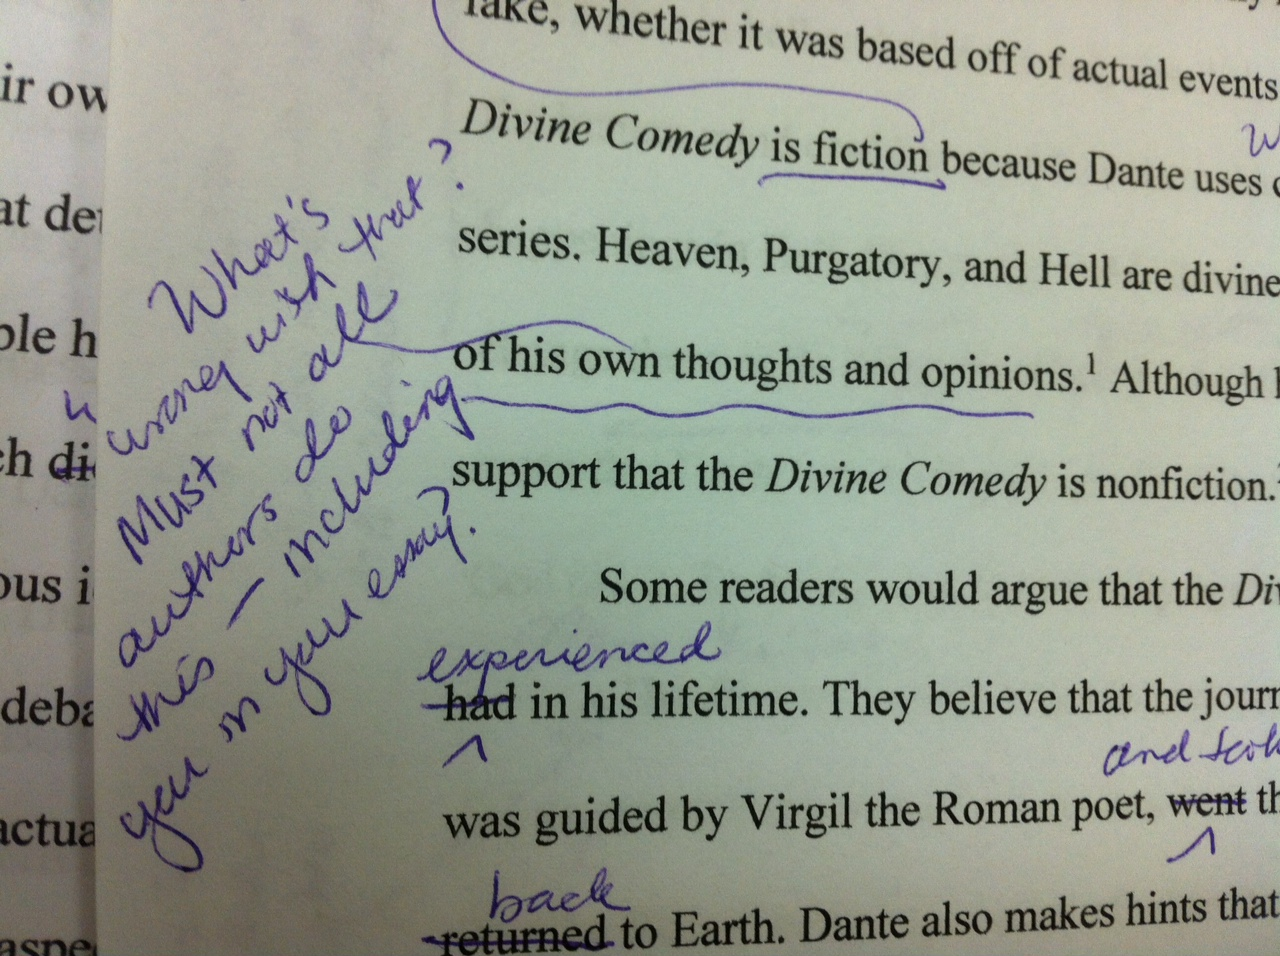 Grapes of wrath religion essay